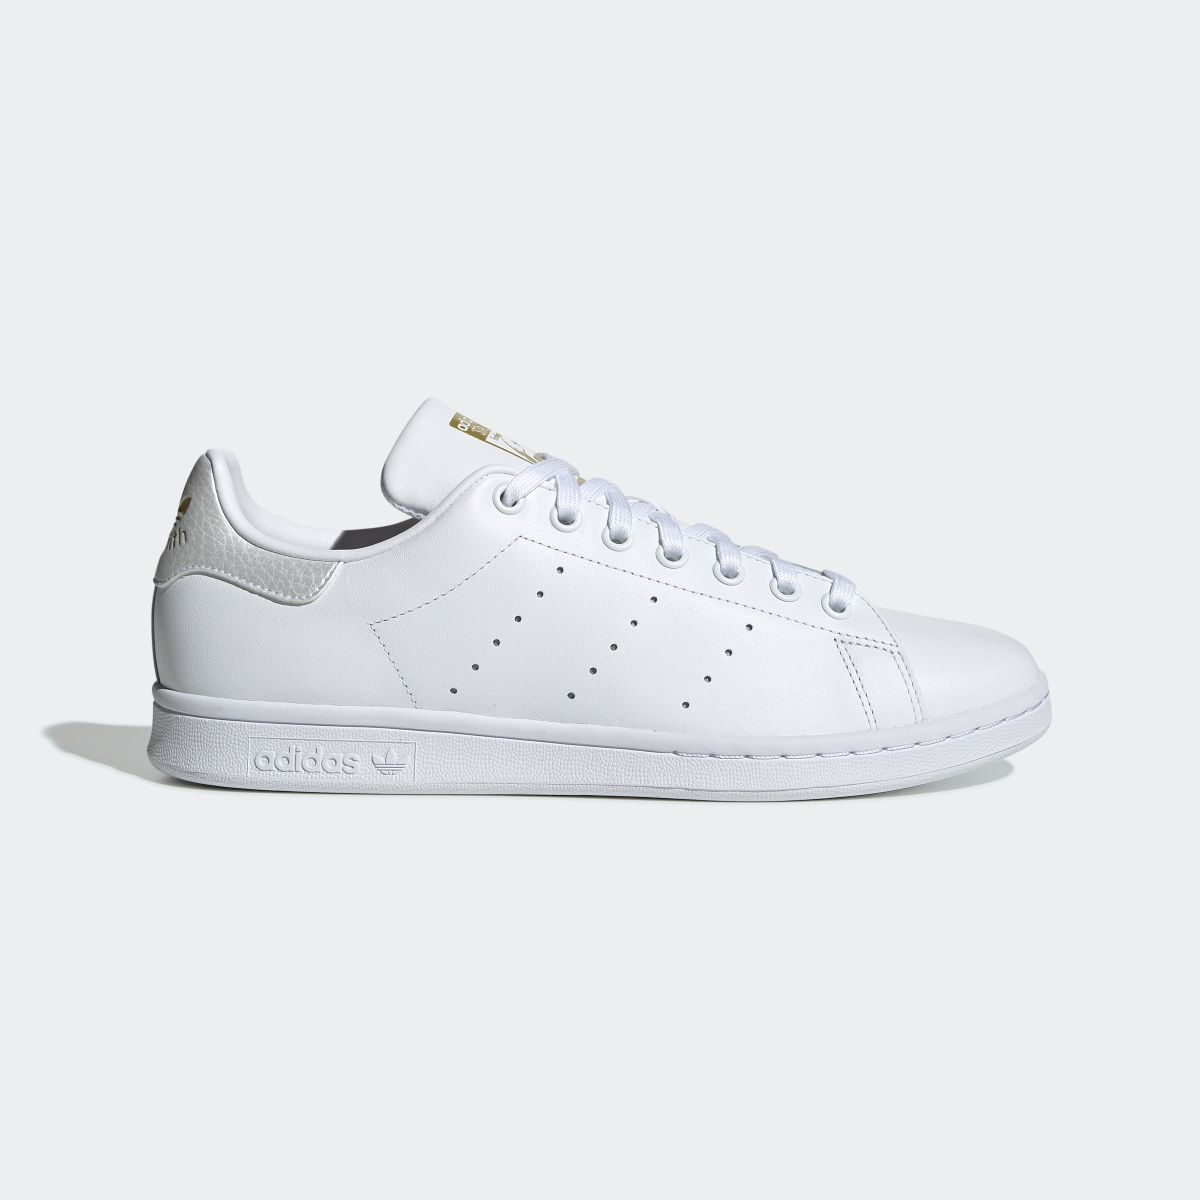 99ad2a6b2301 adidas: All articles point 20 times 07/08 17:00 - 07/11 16:59 Adidas ...